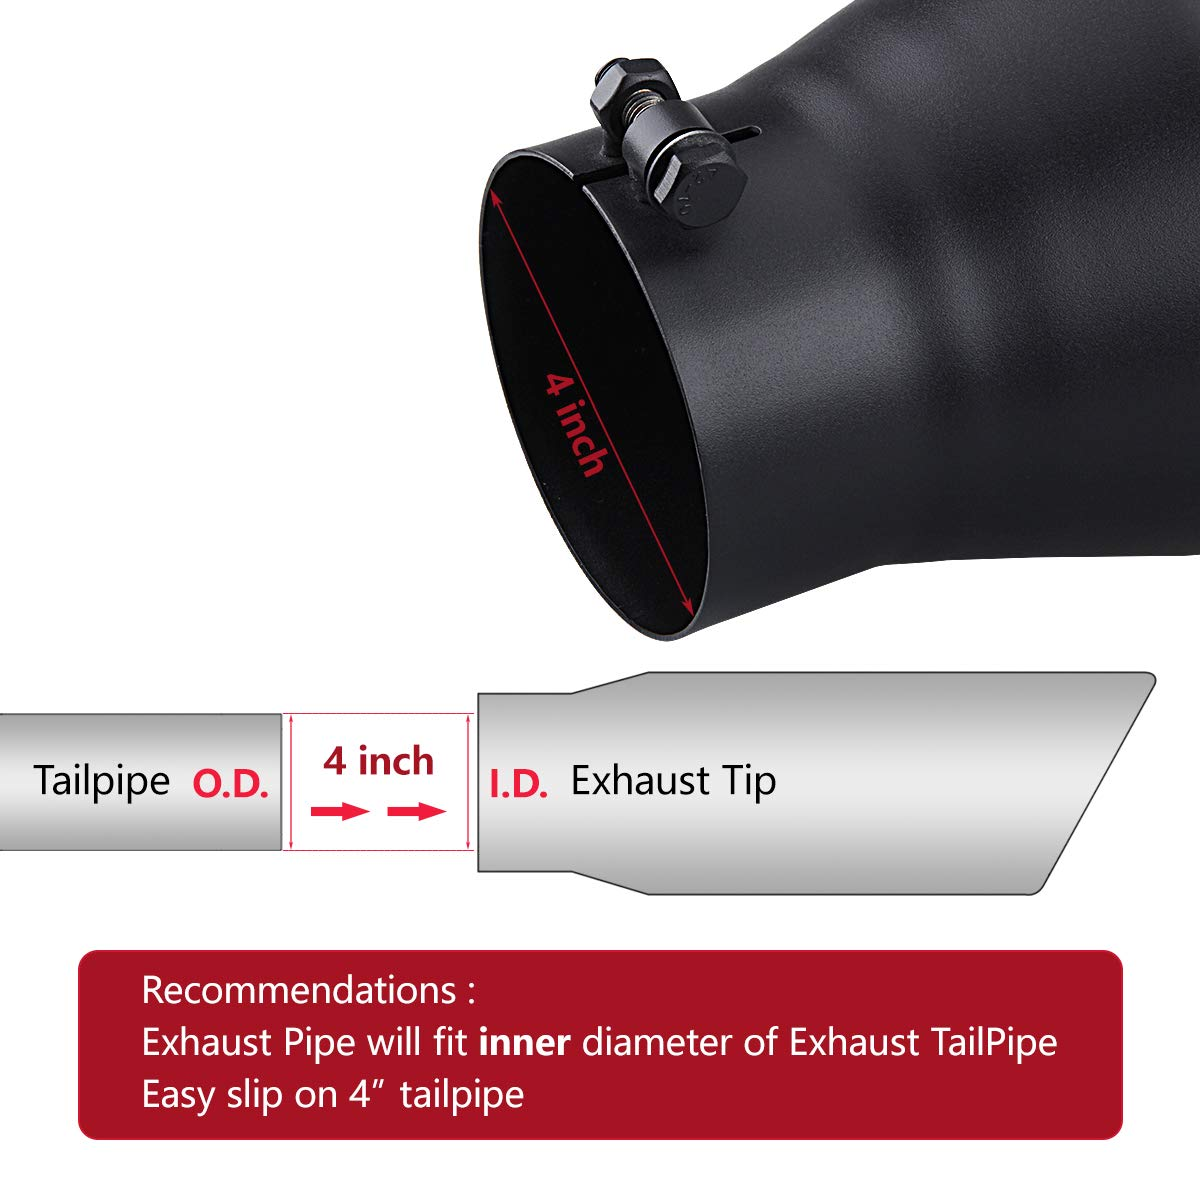 6 outlet 18 Long Exhaust Tip Black Powder Coated Rolled End Angle Cut LCGP Diesel Truck Tailtip 4 inlet